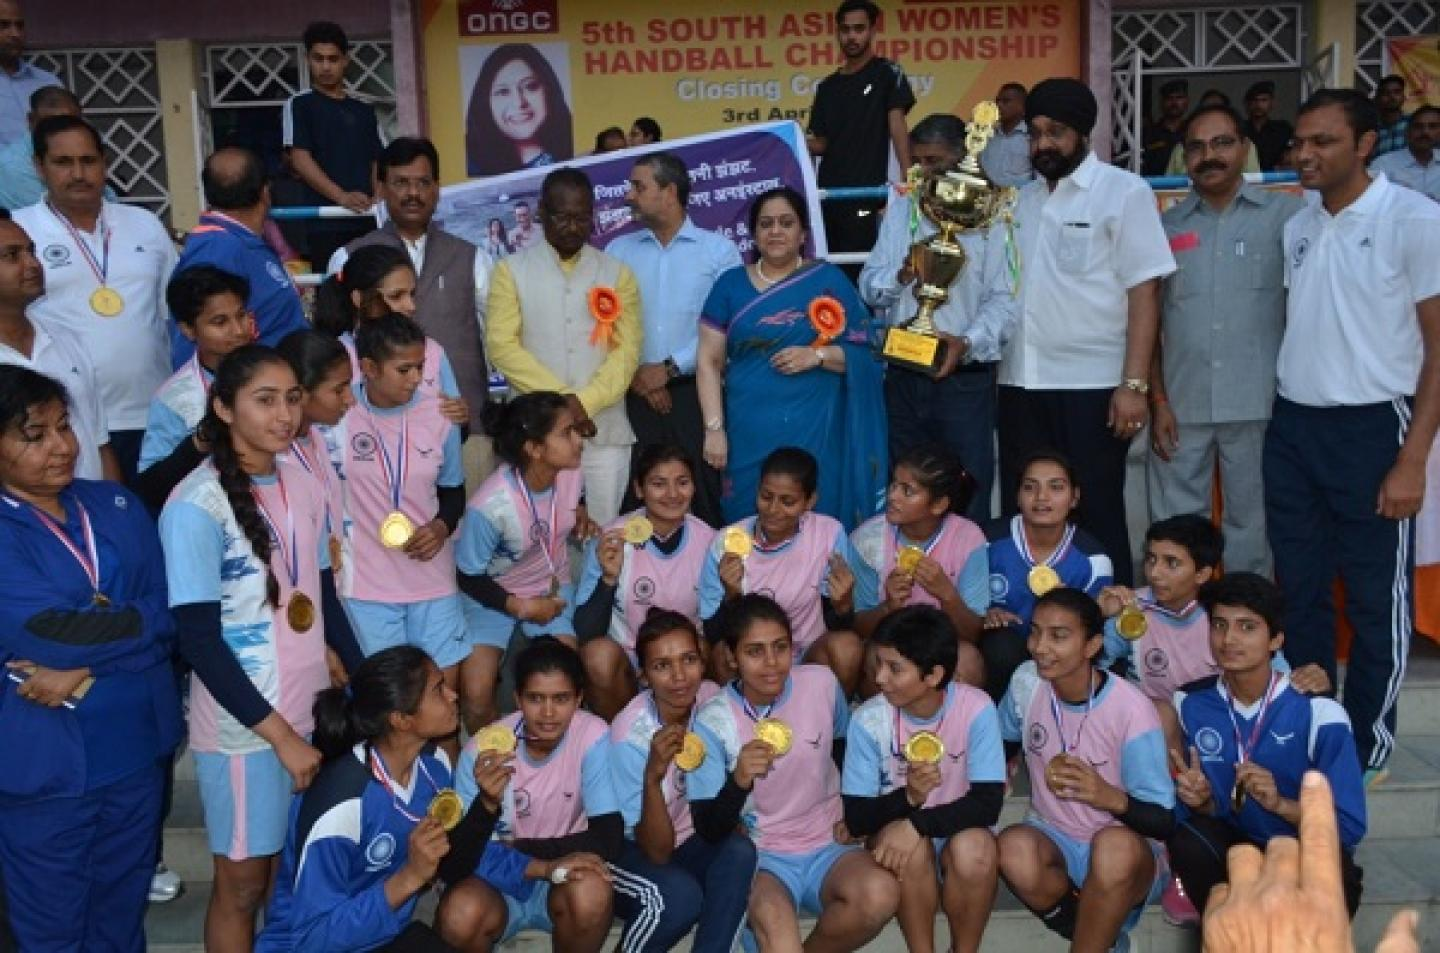 India win 5th Women's South Asian Handball Championship